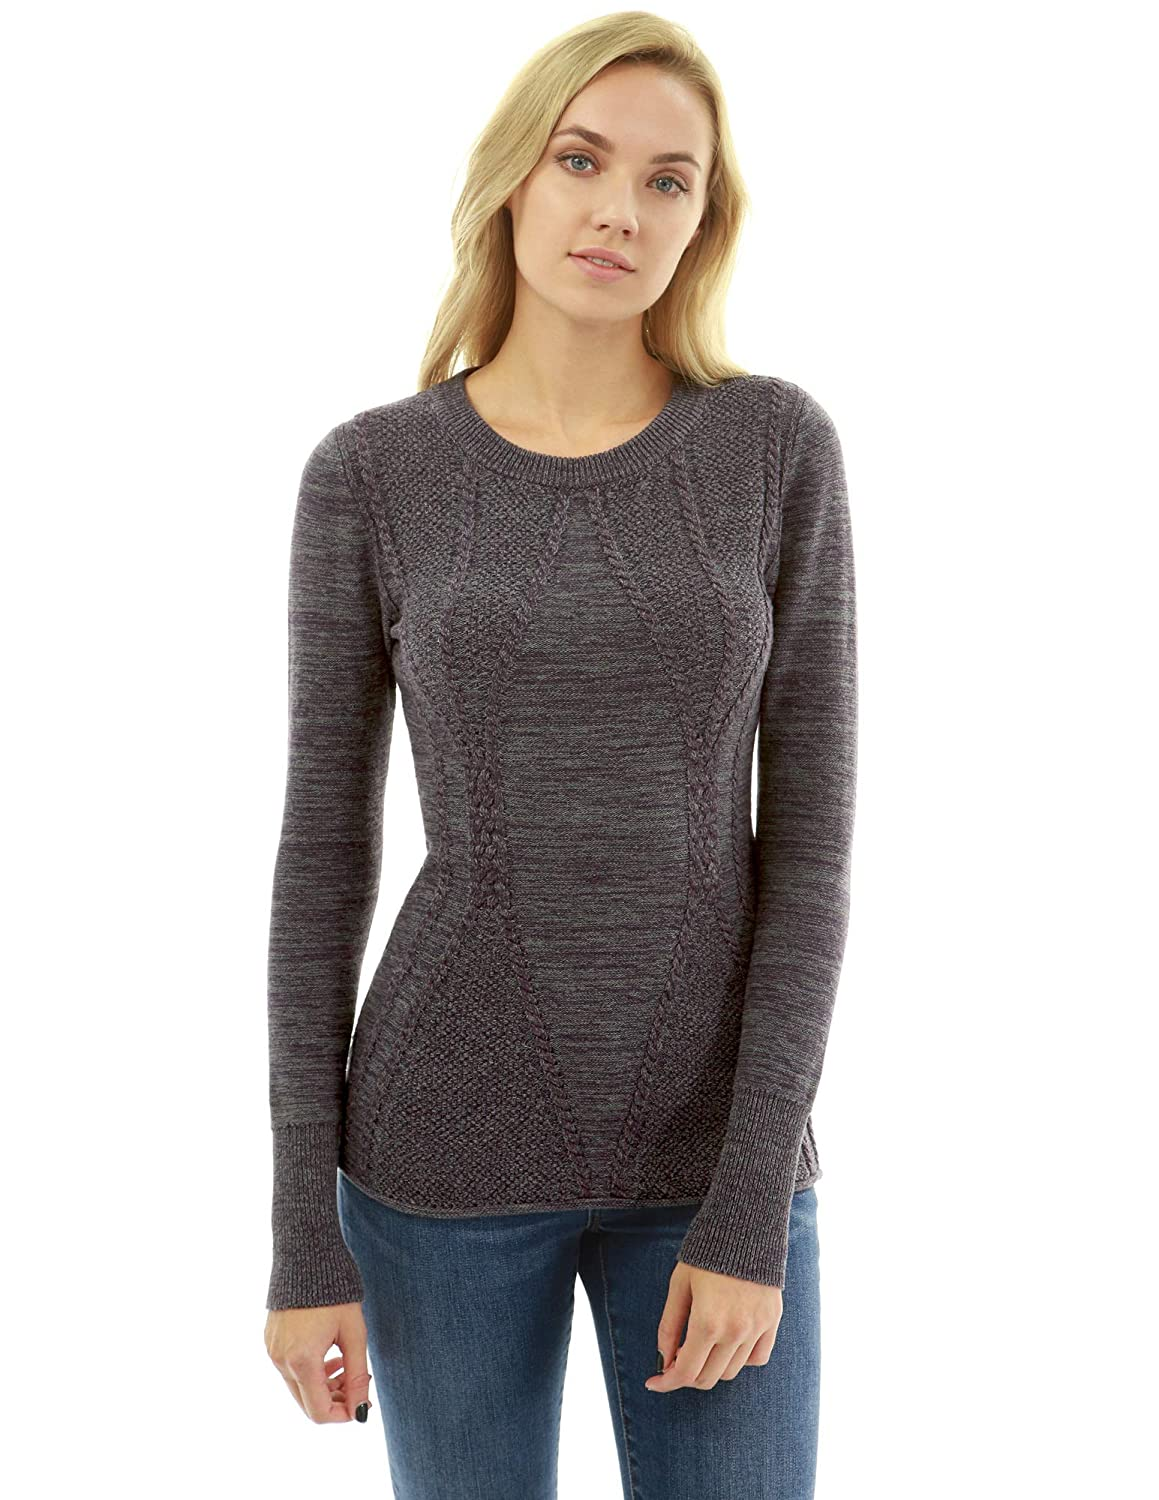 PattyBoutik Women Cotton Blend Crewneck Cable Knit Sweater